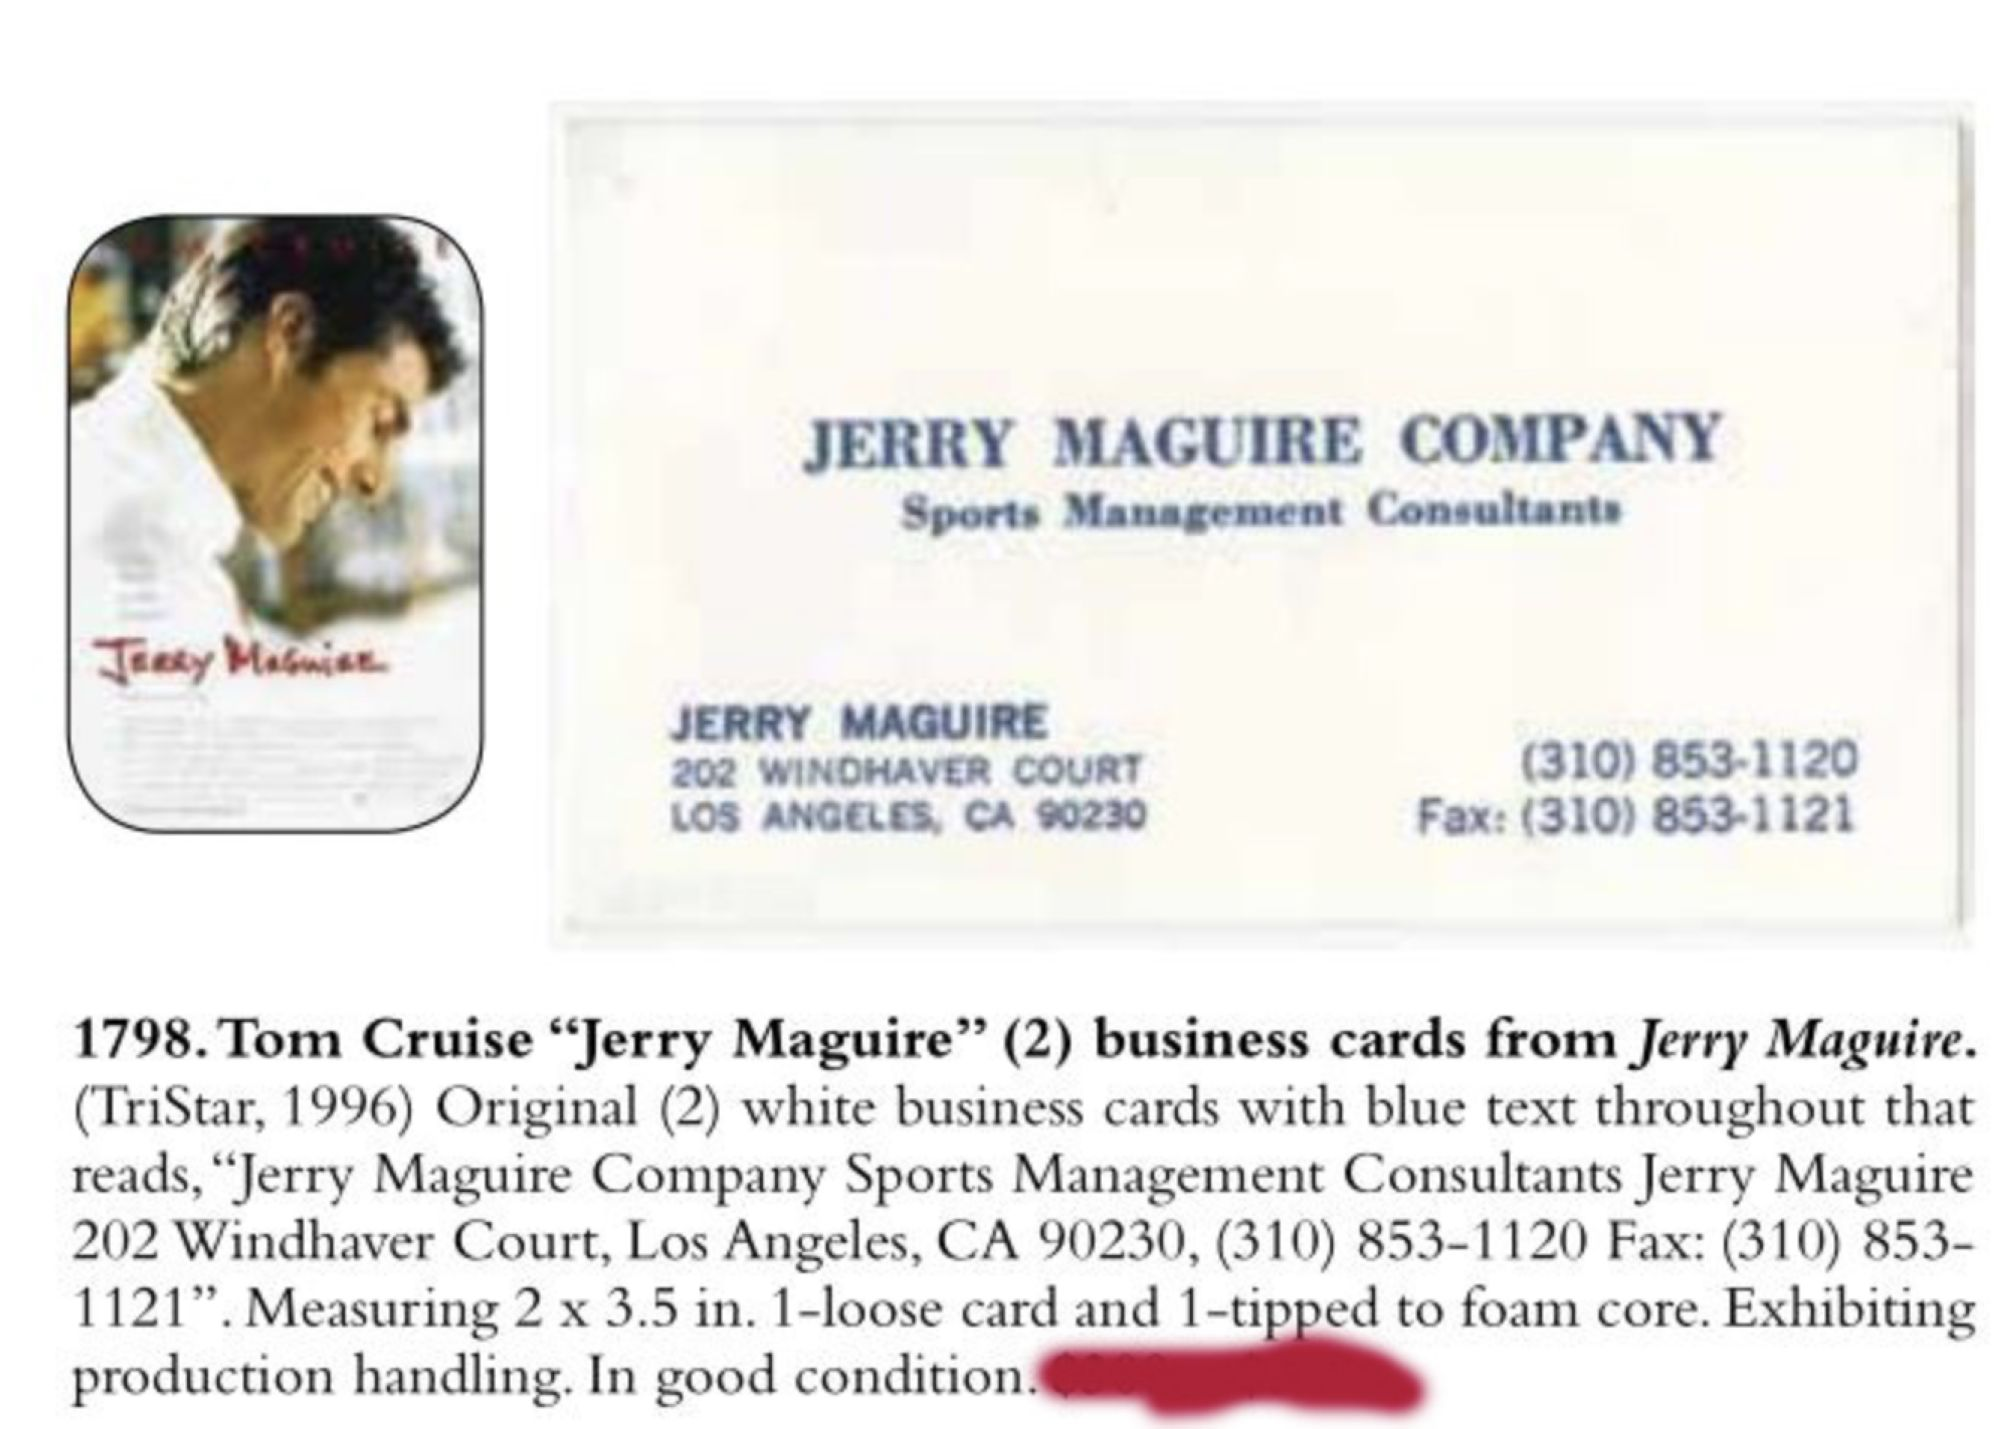 04-Jerry-Maguire-business-cards